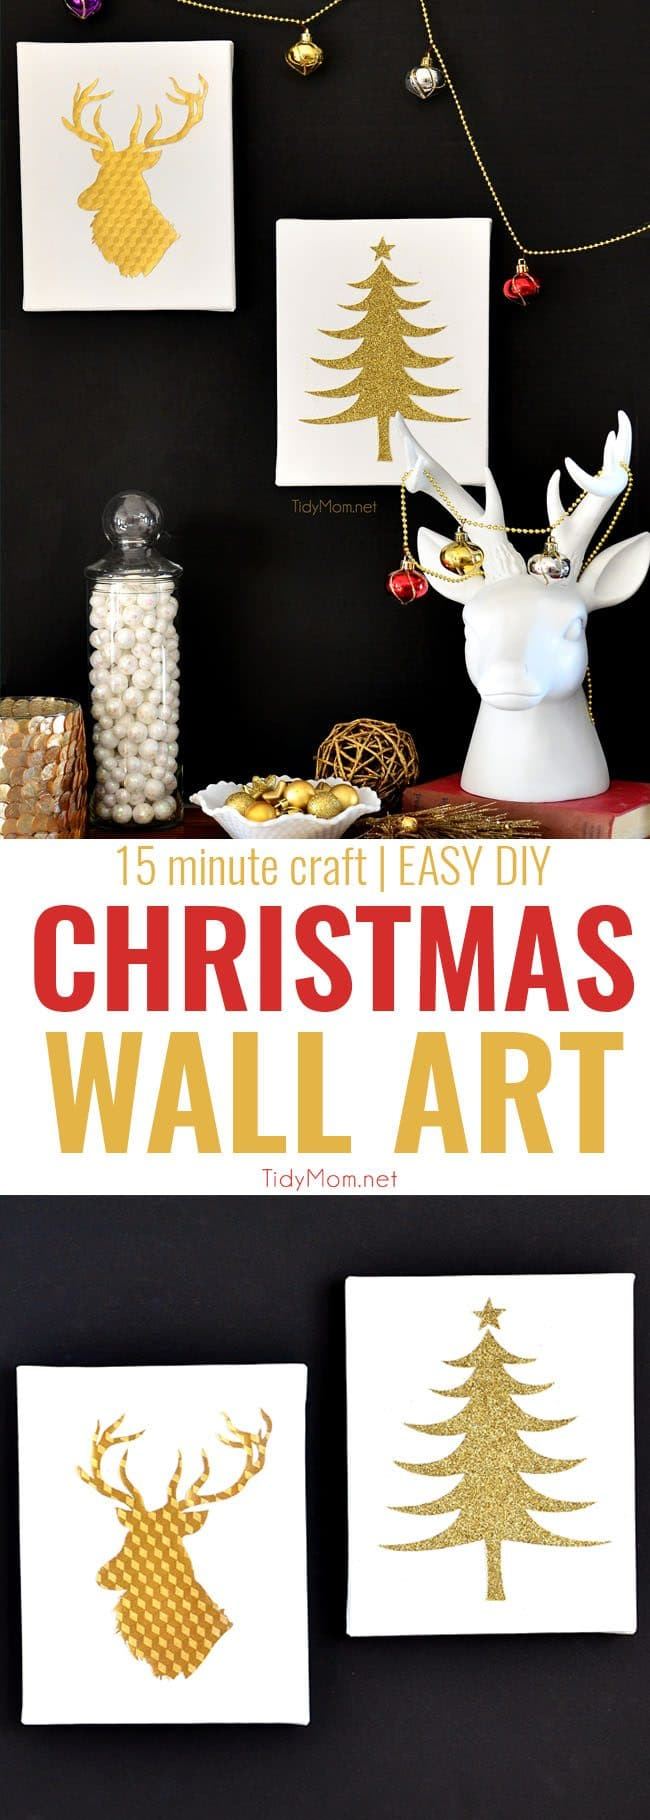 Easy Gold and White Christmas Wall Art - You can make your own custom DIY Christmas Wall Art in no time, with the help of a craft cutter, like the Silhouette. The possibilities are endless! full tutorial at TidyMom.net